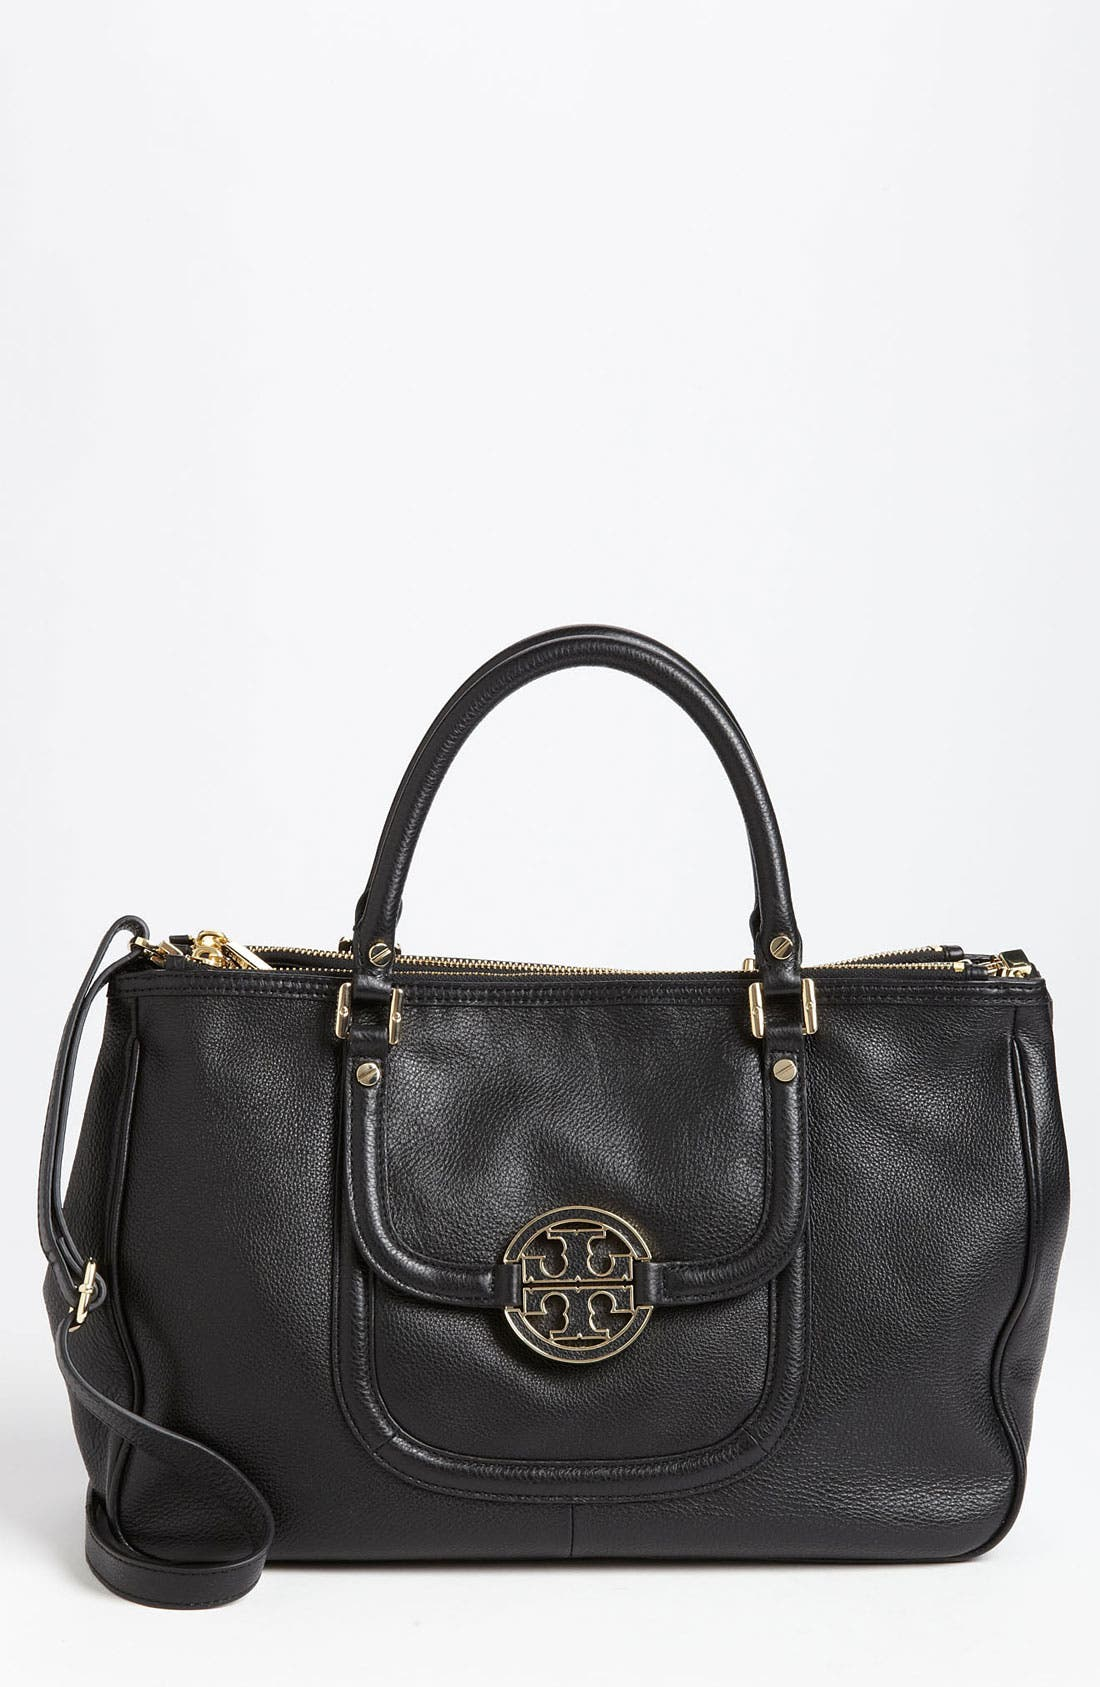 Alternate Image 1 Selected - Tory Burch 'Amanda' Double Zip Tote